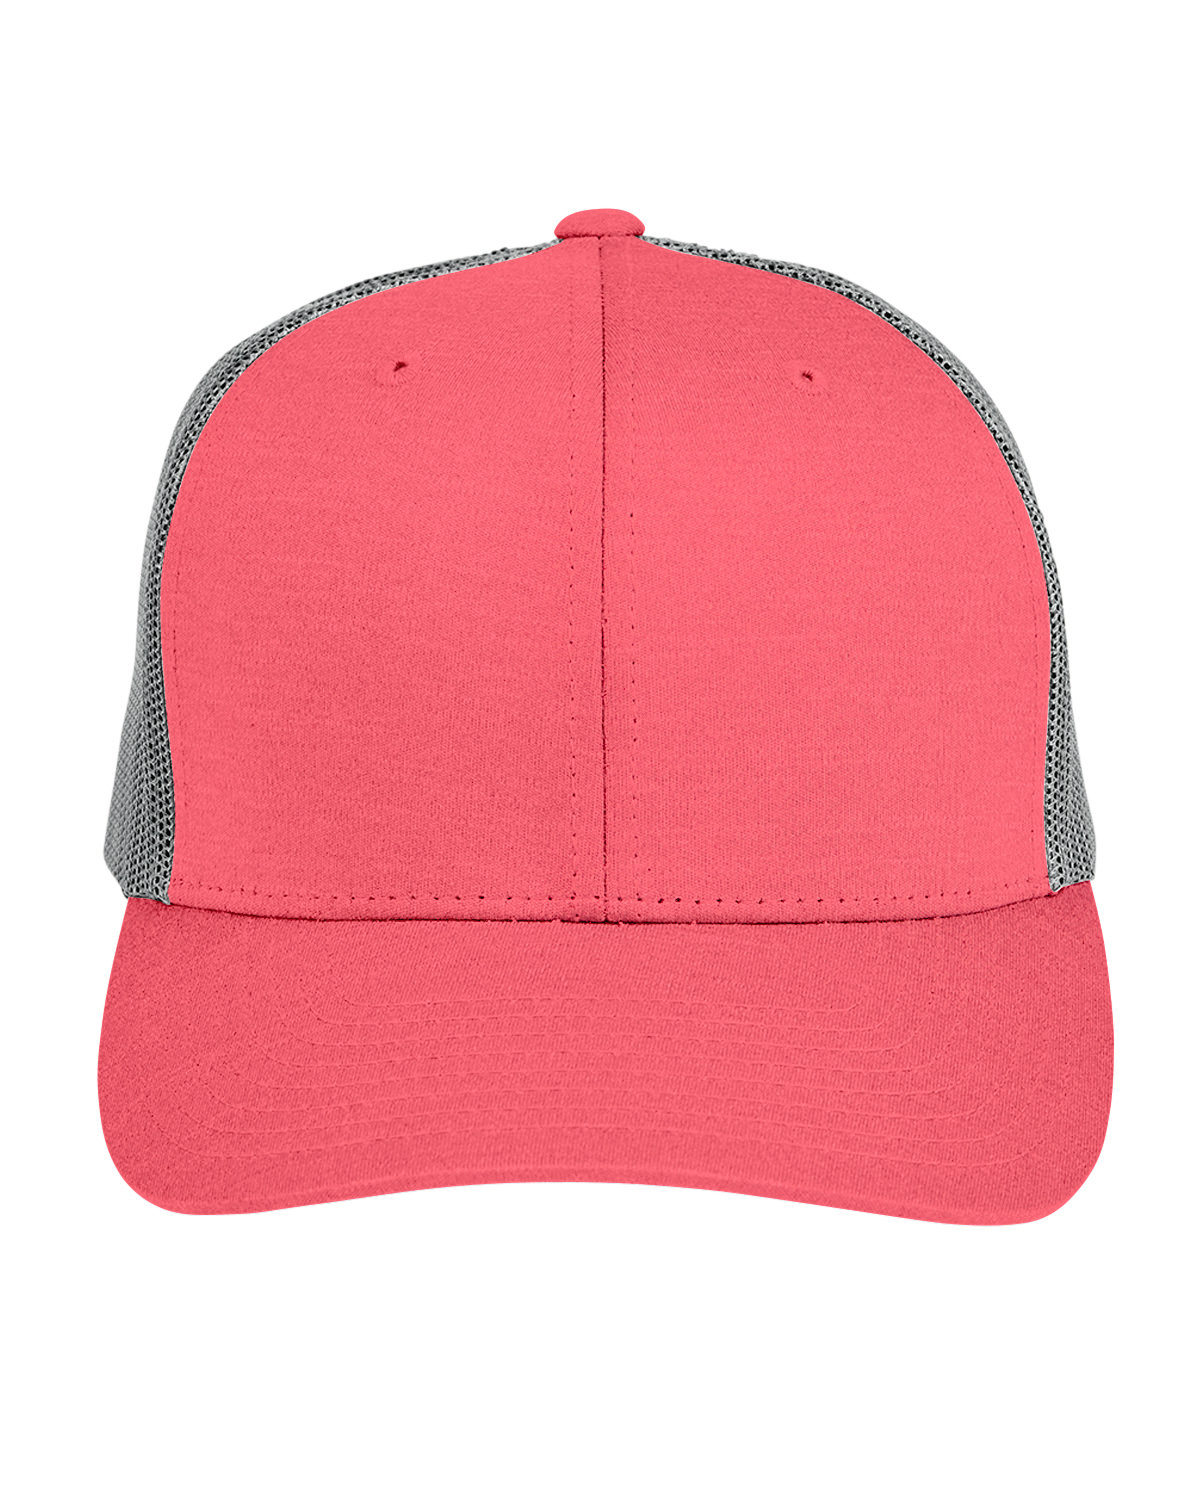 Team 365 by Yupoong® Adult Zone Sonic Heather Trucker Cap SP RED HT/ SP GR